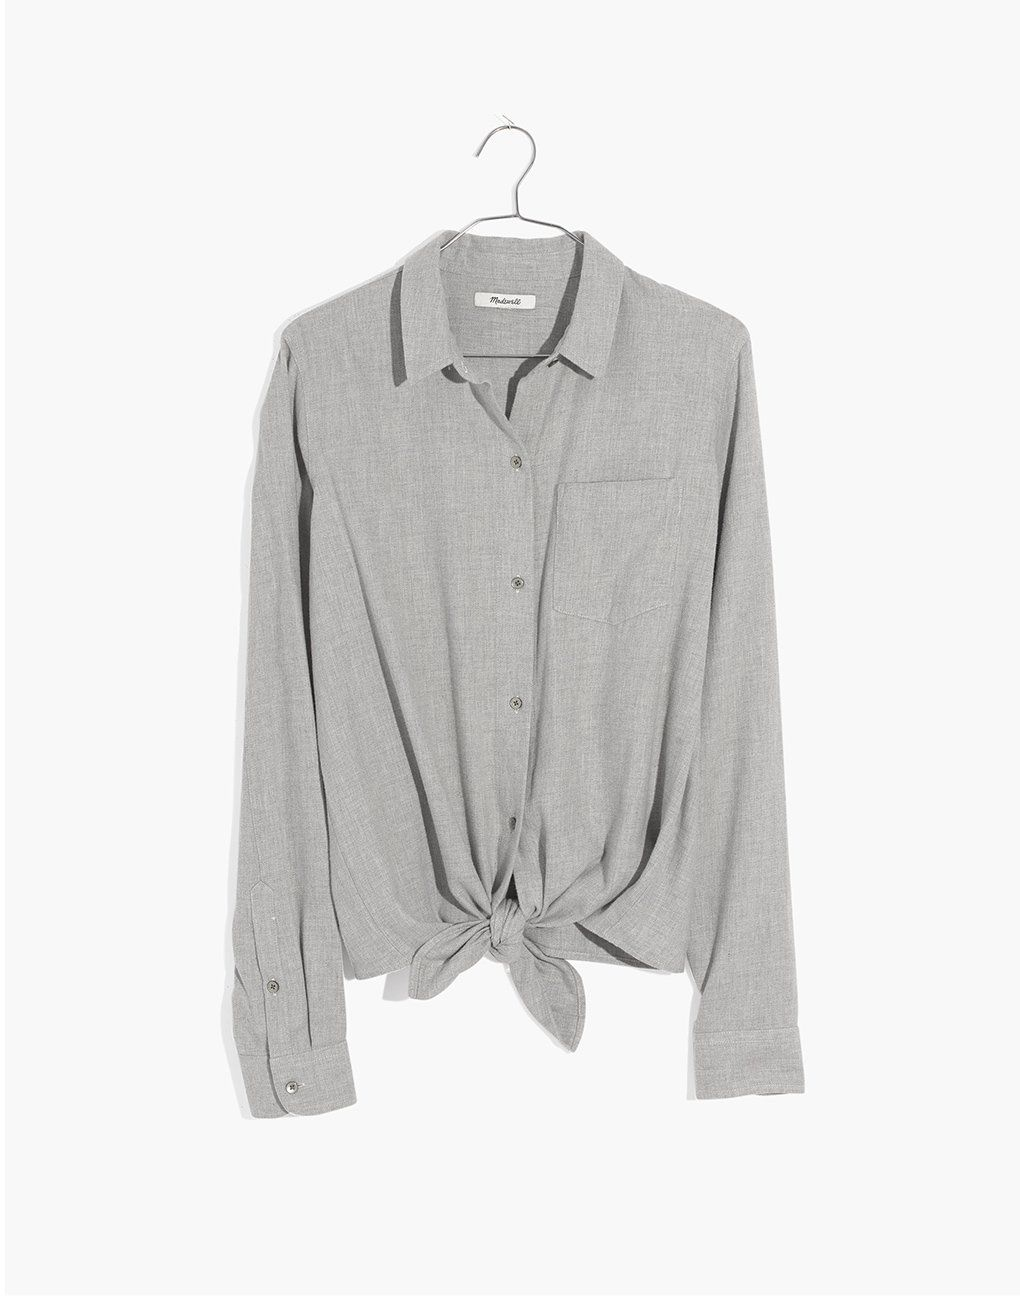 5397b1438c madewell flannel tie-front shirt. | Inspire: Fashion | Shirts ...